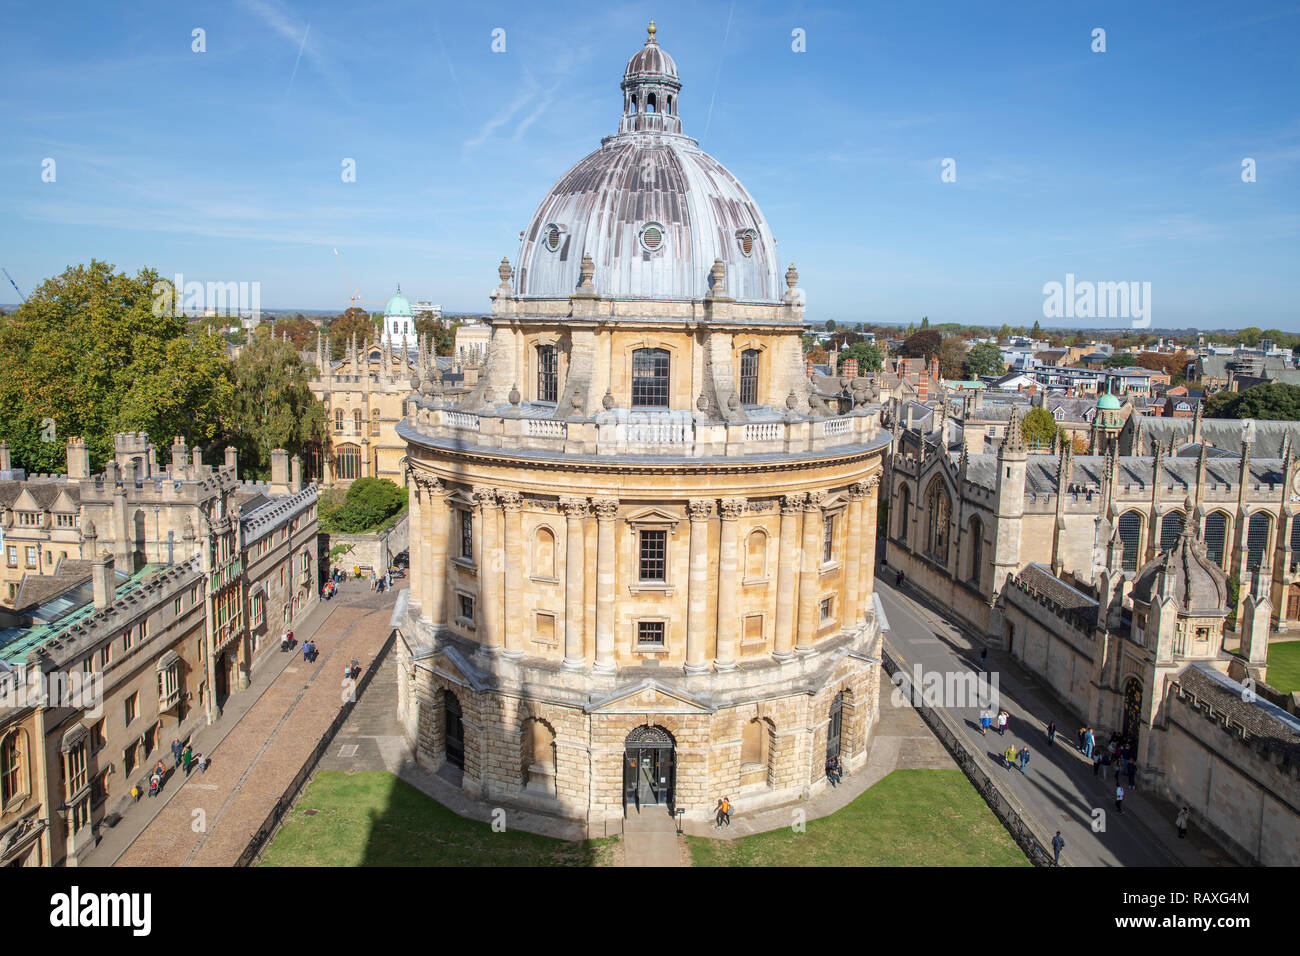 The Radcliffe Camera in Oxford, England. Stock Photo